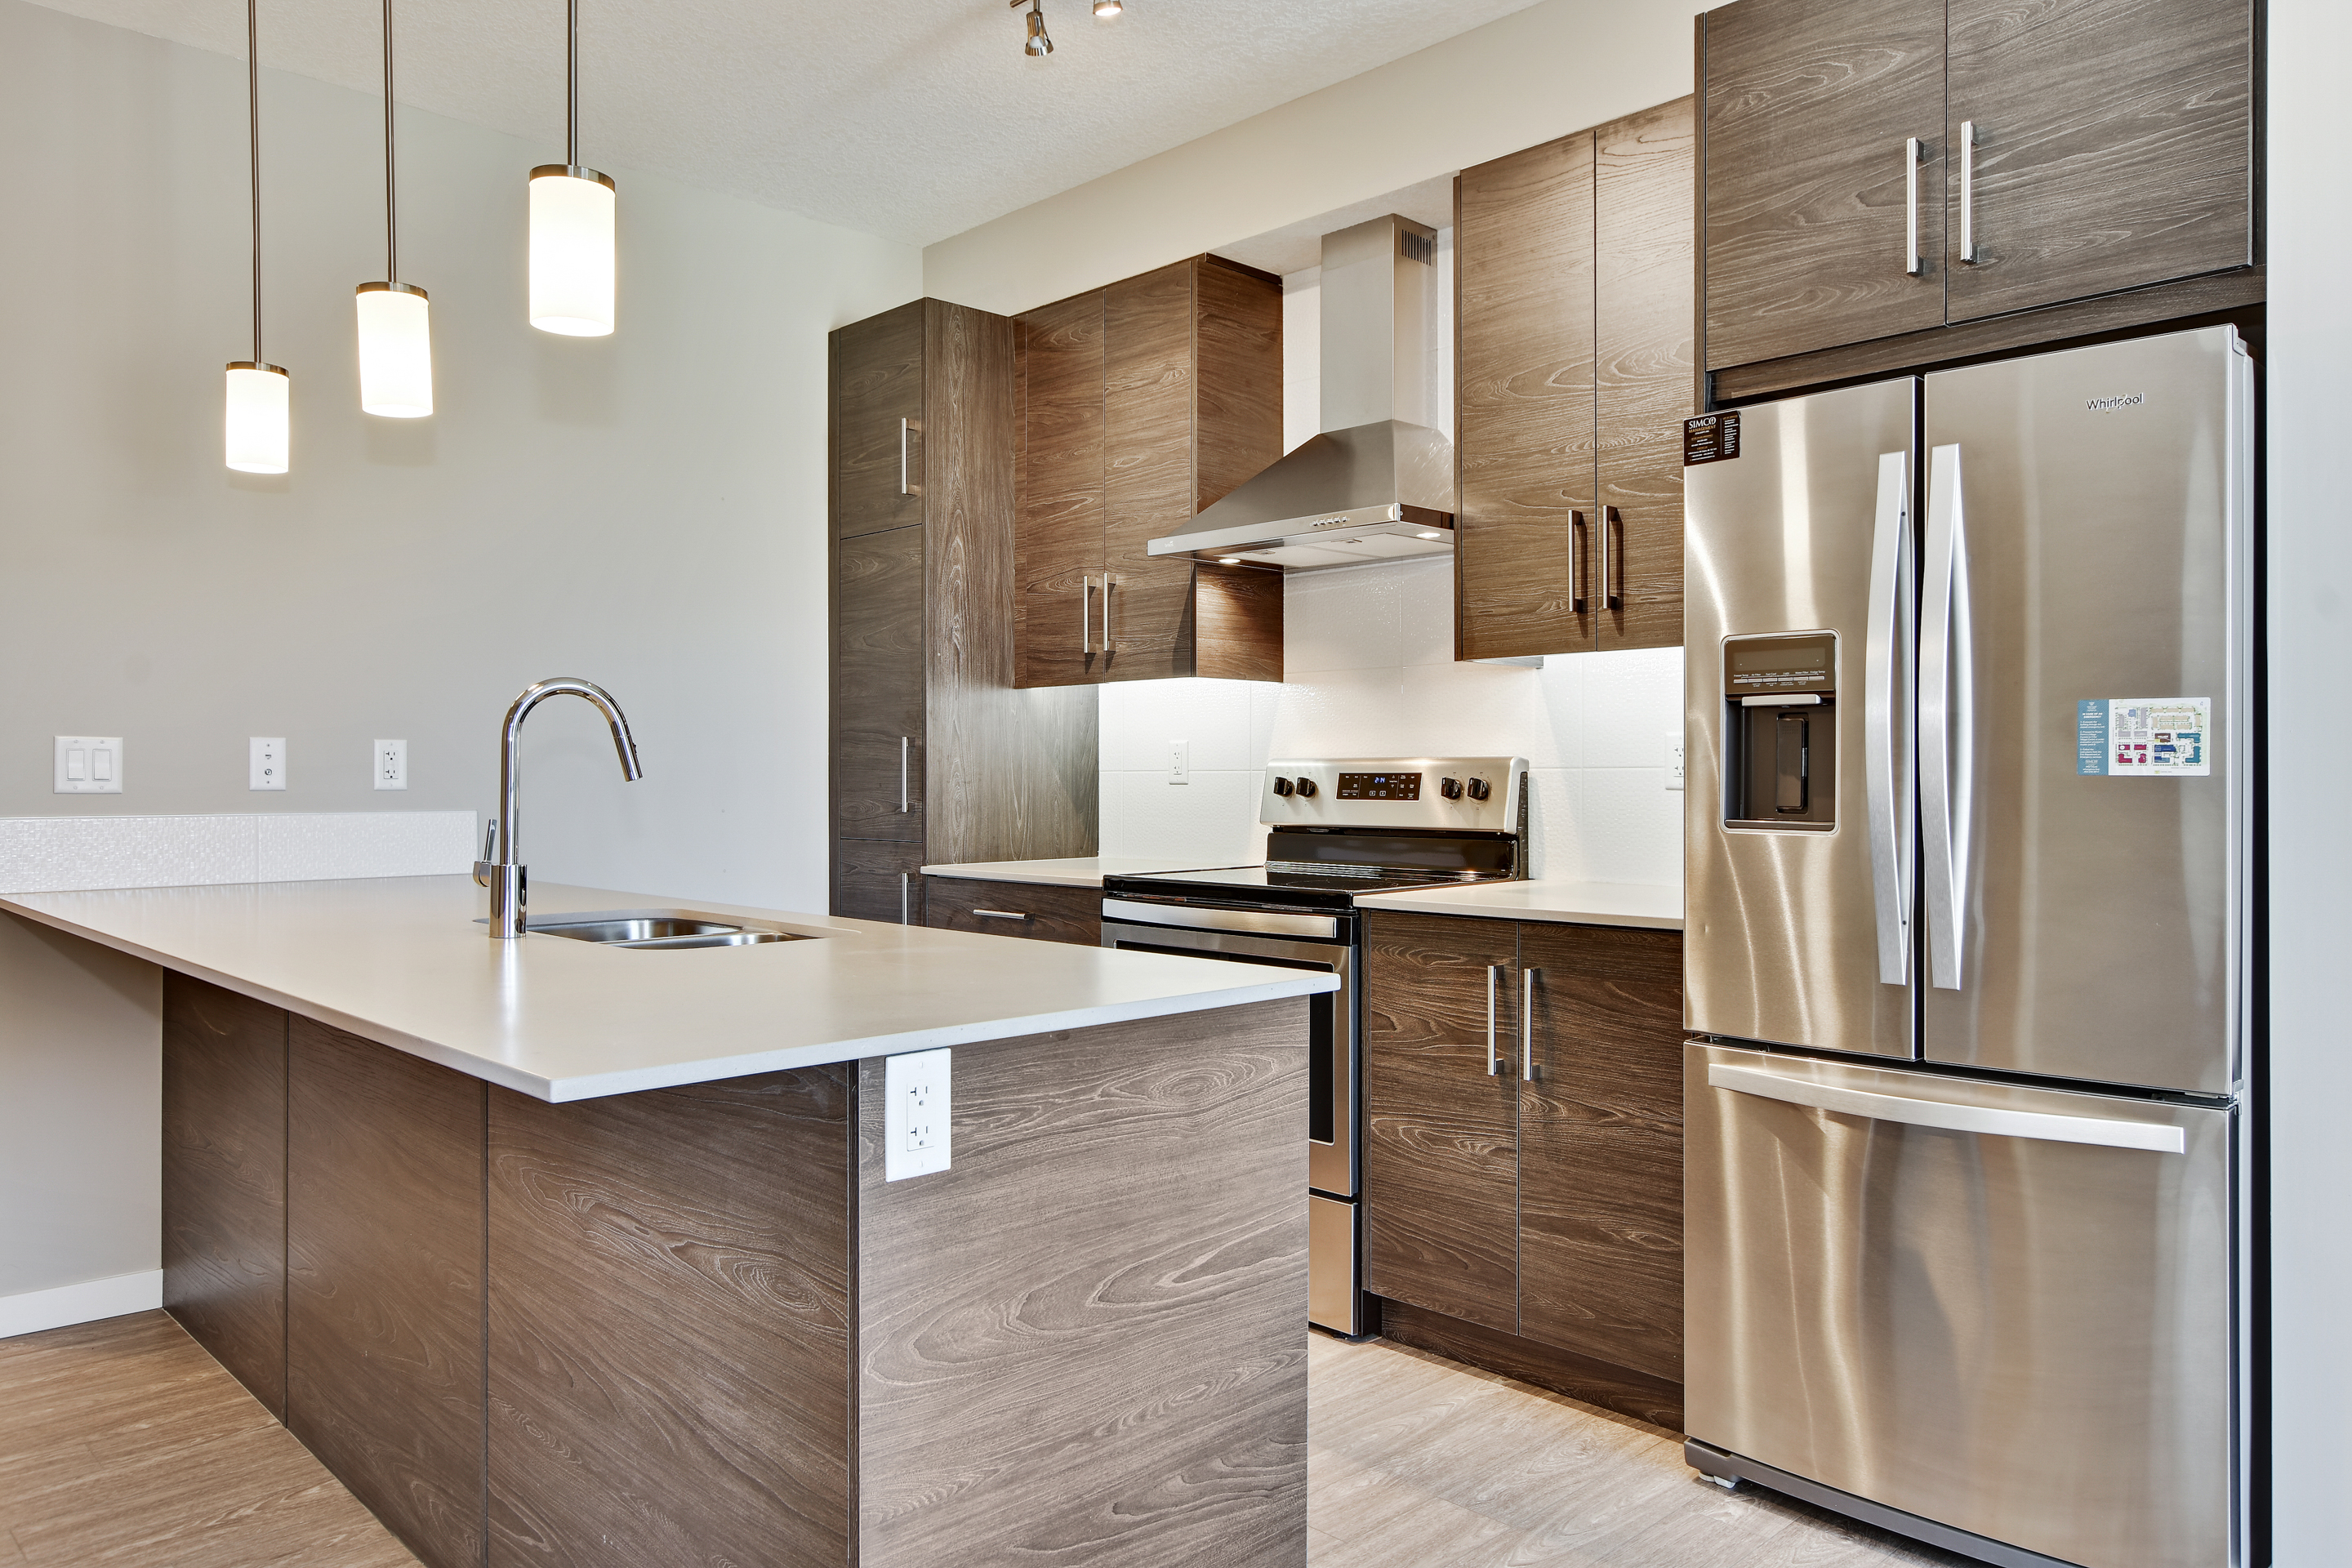 615, 121 Mahogany Center SE, Calgary, Alberta T3M 0T2, ,Apartment,For Rent,Lyric,Mahogany Center SE,615,1057